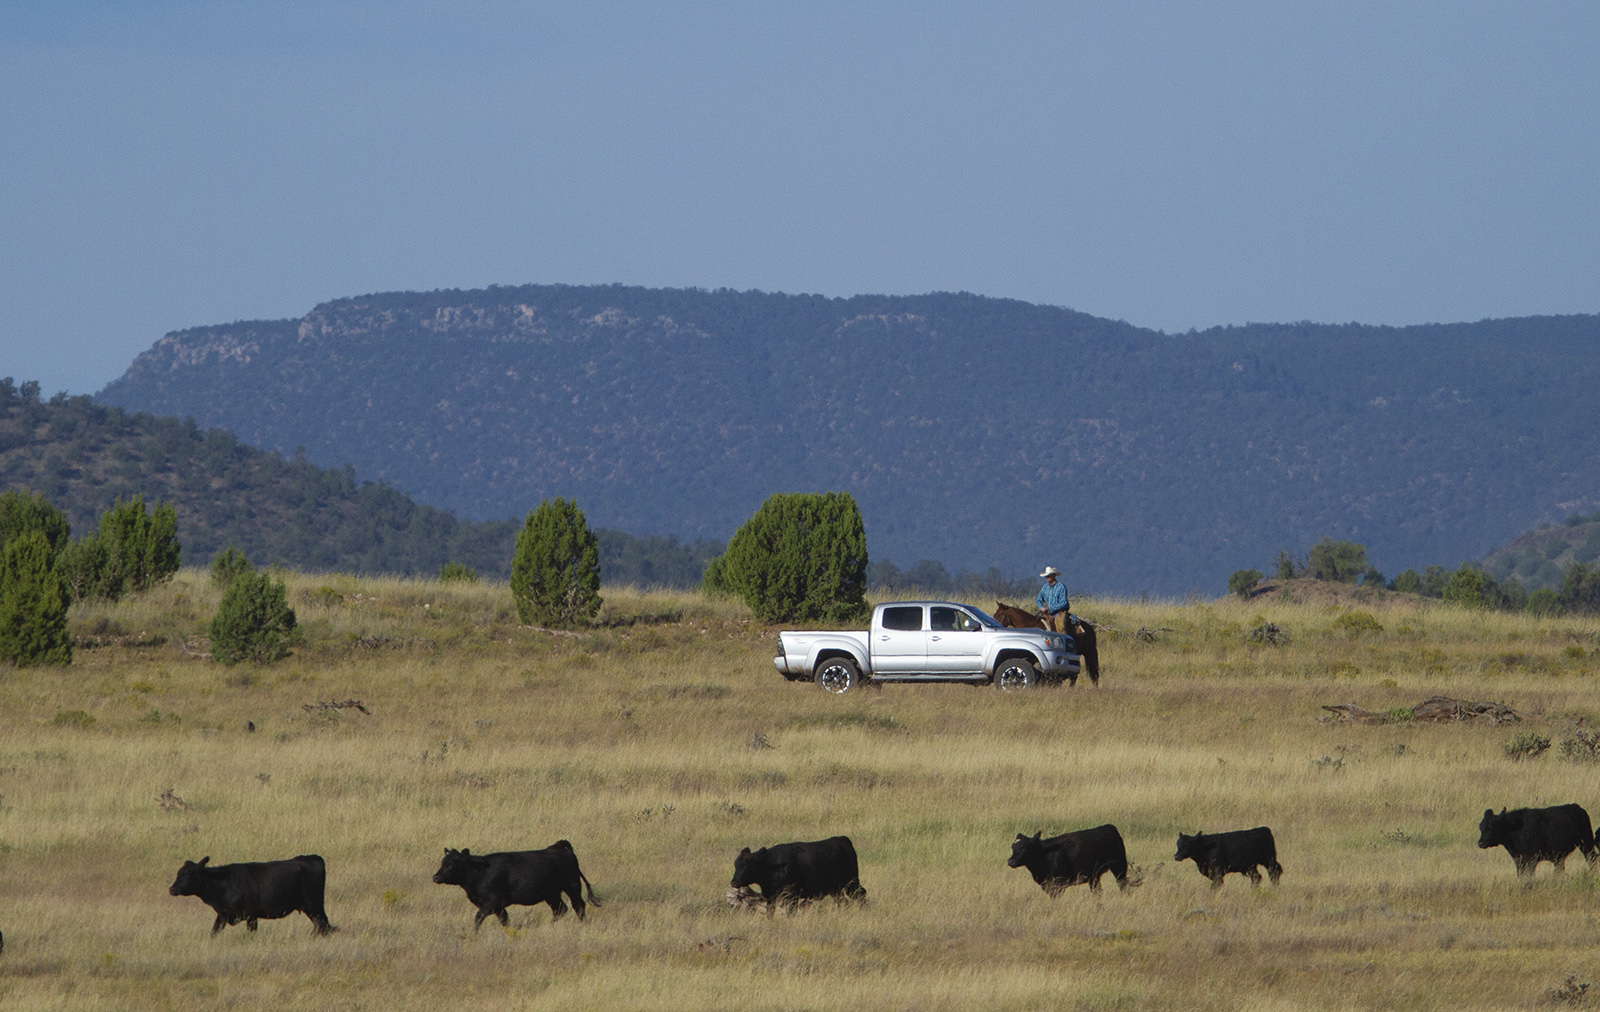 People stop and ask ranchers questions.